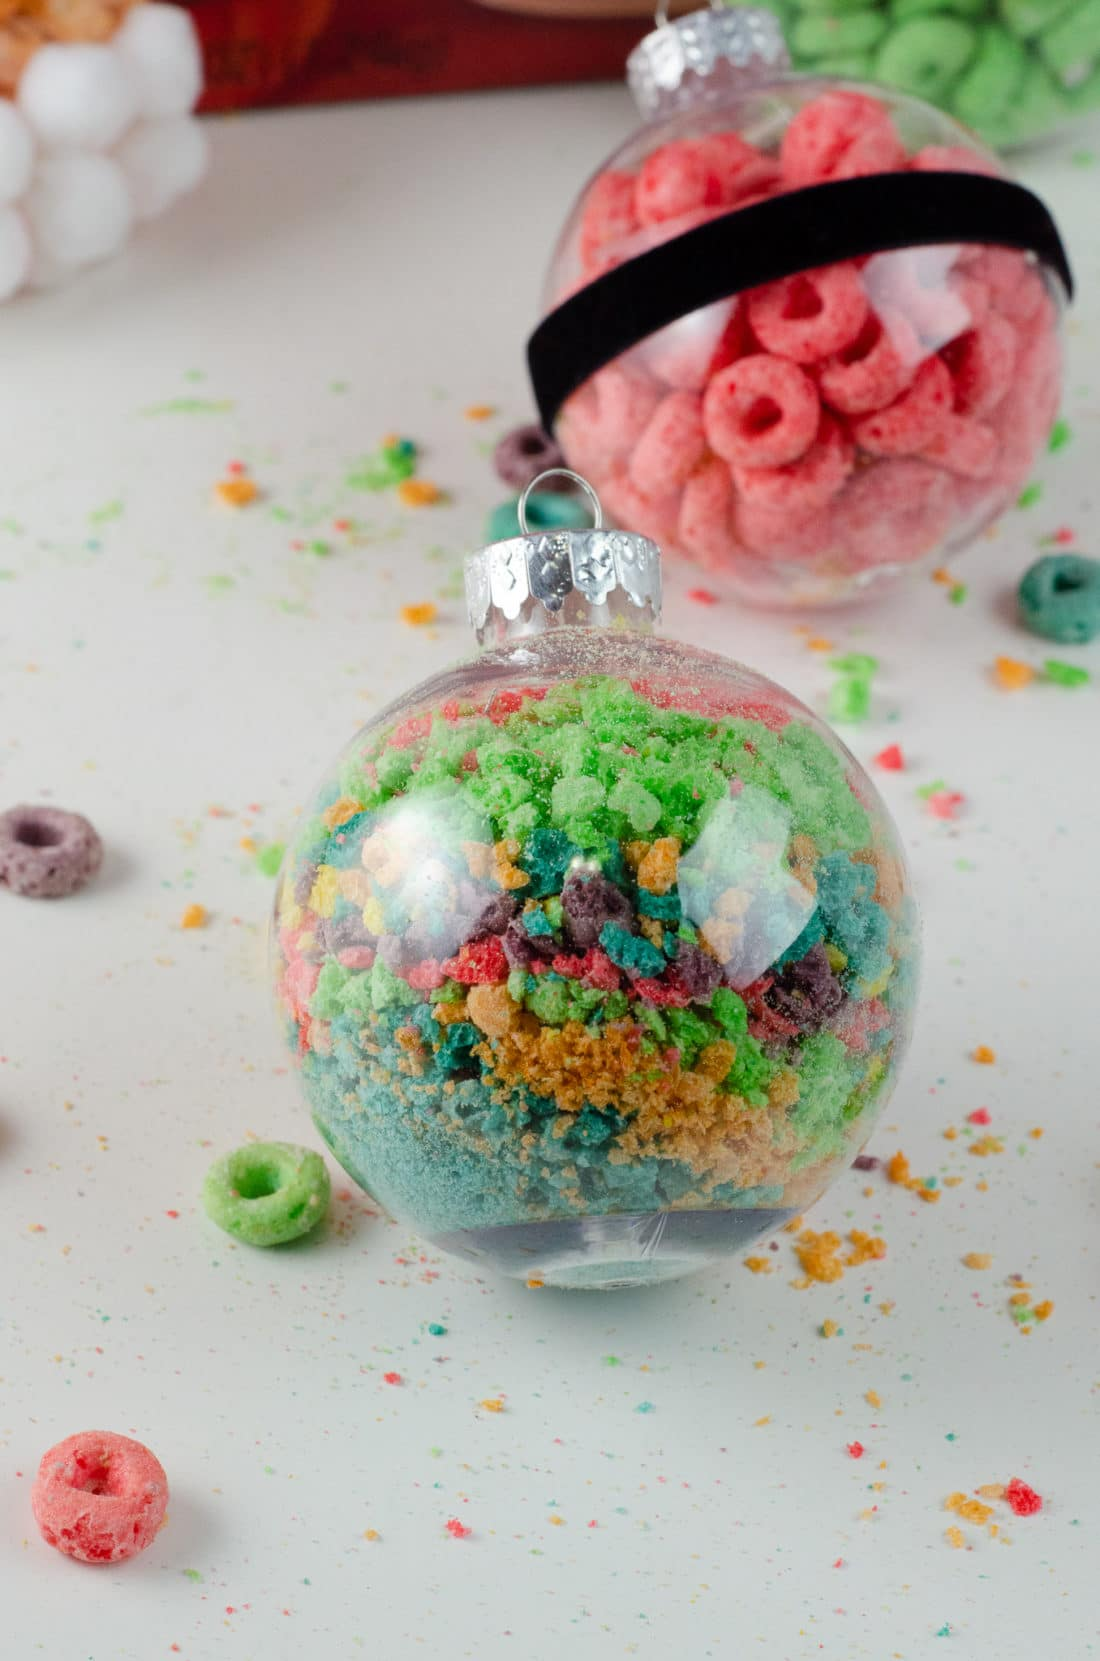 Christmas Ornament Ideas for Kids Using Cereal Abstract Santa Belly. It's time to let the kids be the boss for this new kid-friendlyChristmas DIY. Rethink Cereal with somr my Christmas Ornament Ideas for Kids Using Cereal.